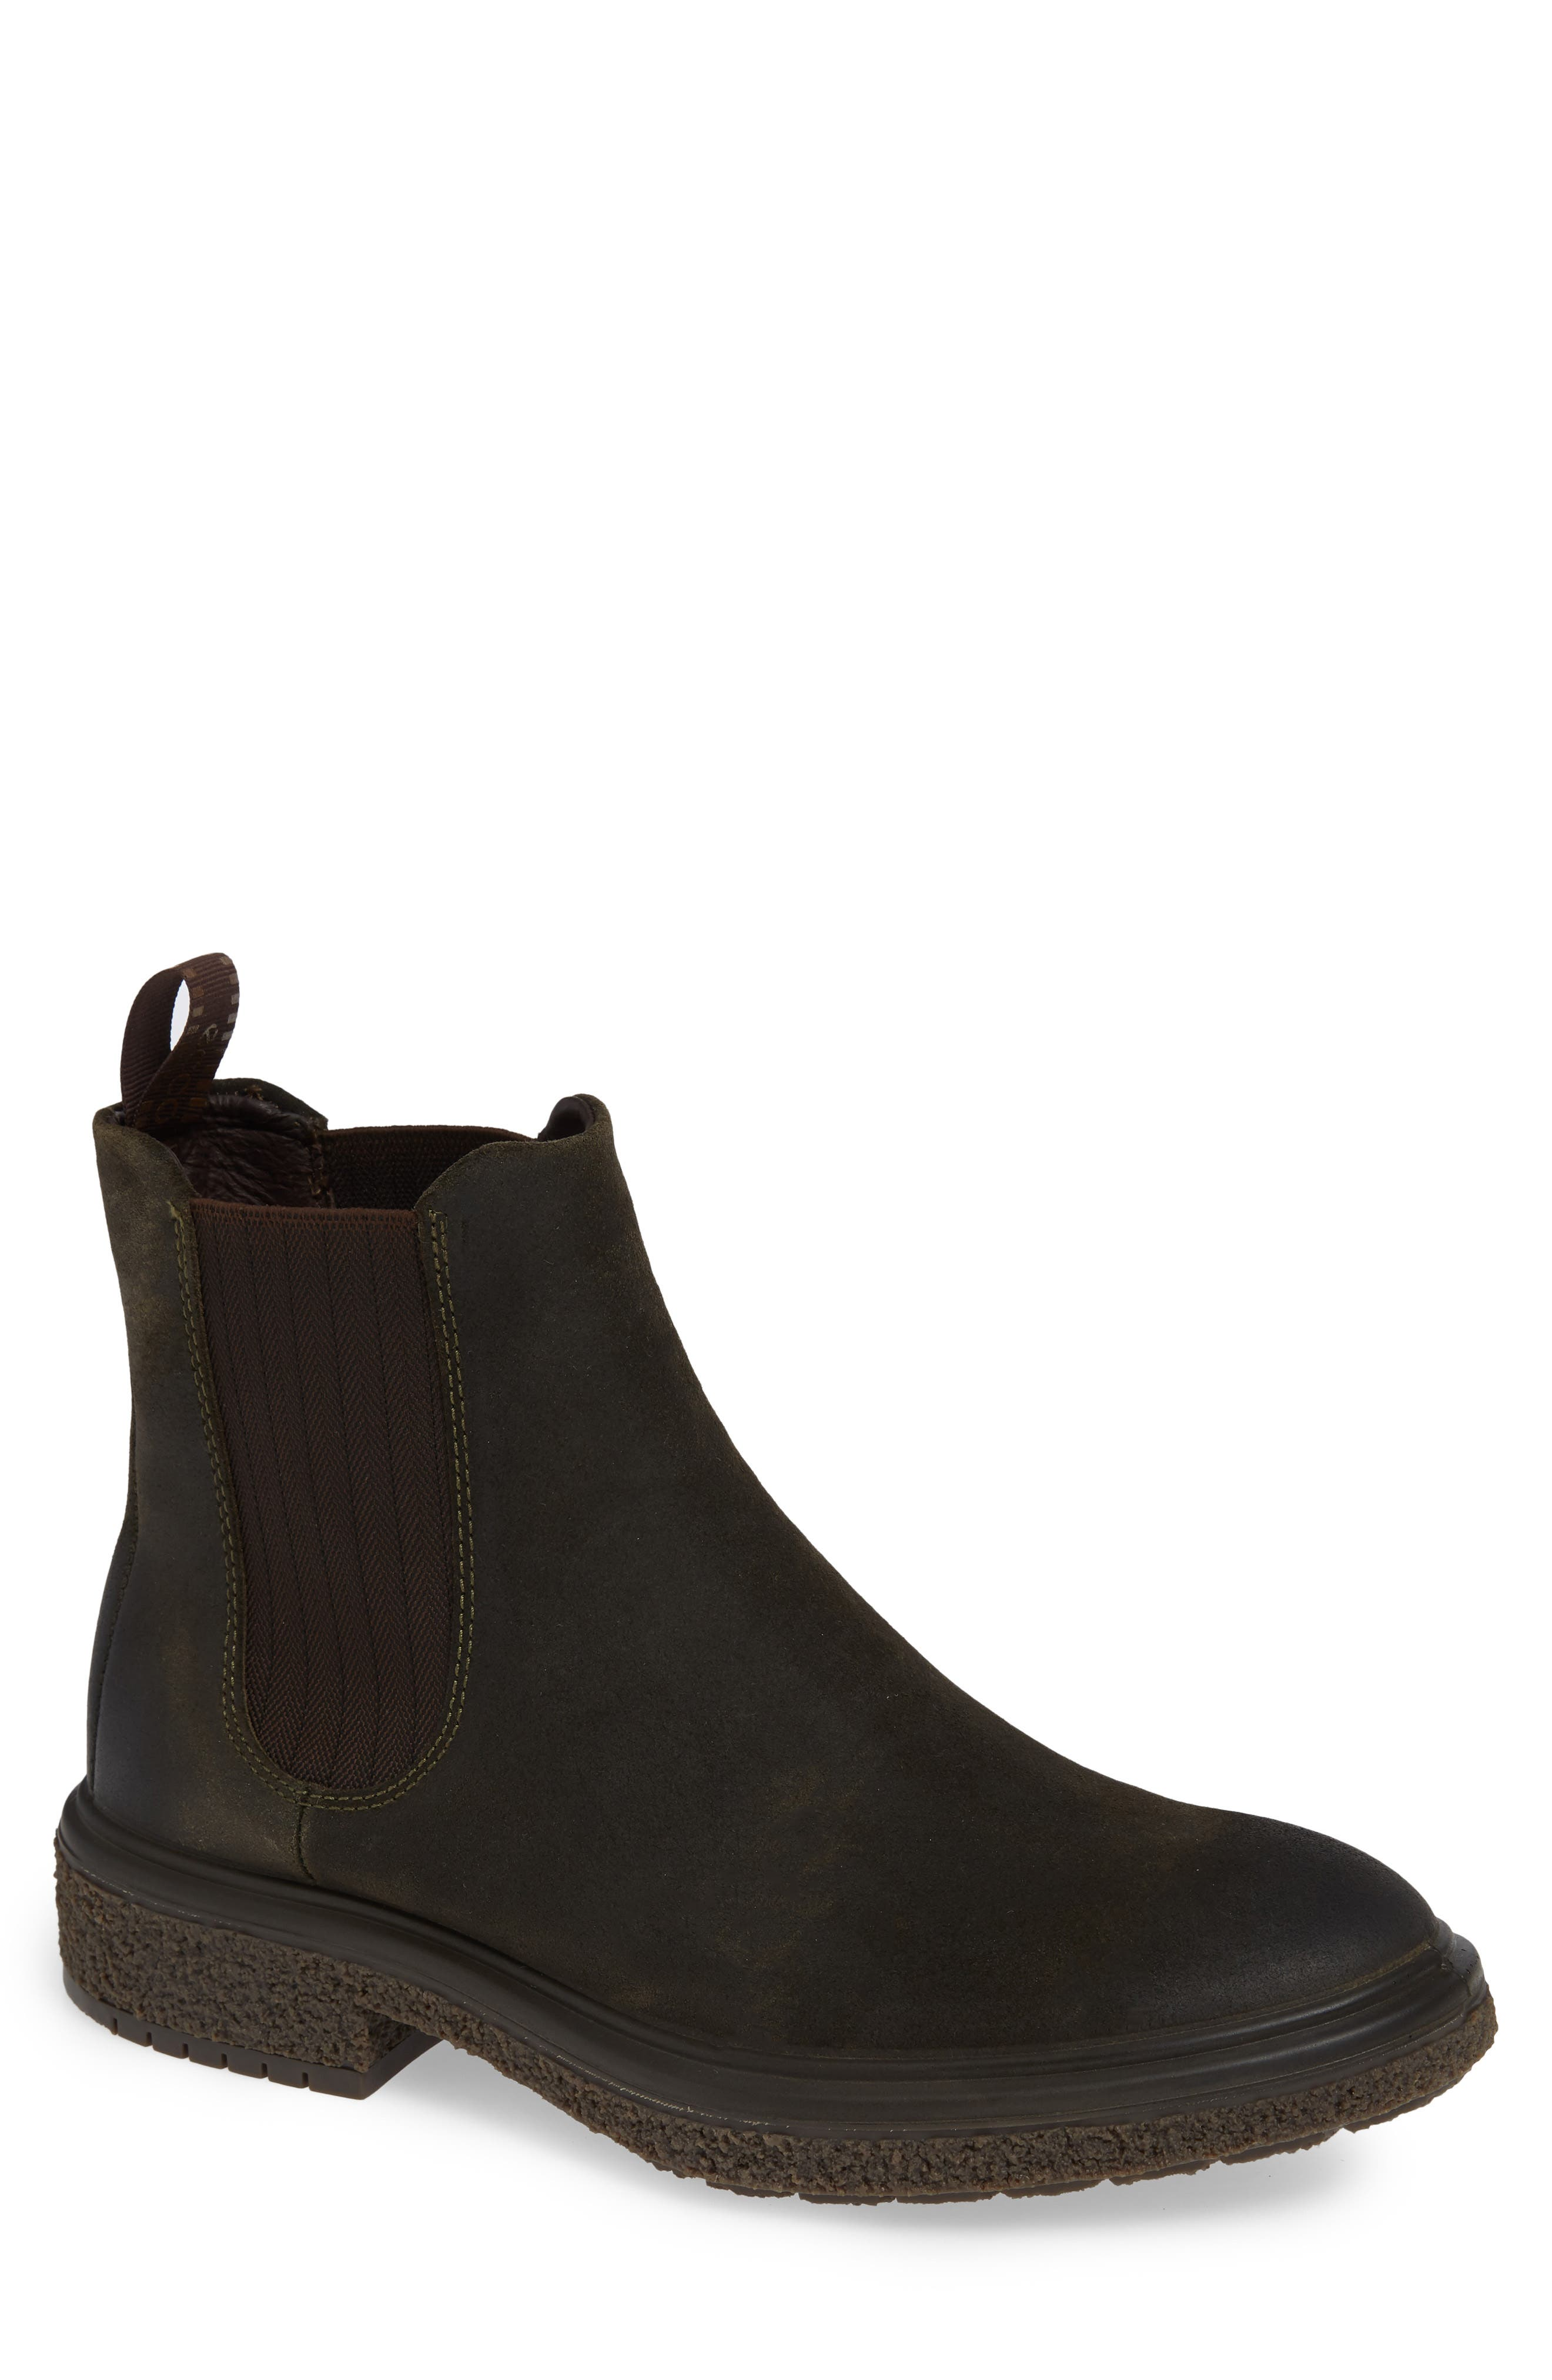 Crepetray Chelsea Boot,                             Main thumbnail 1, color,                             TARMAC SUEDE